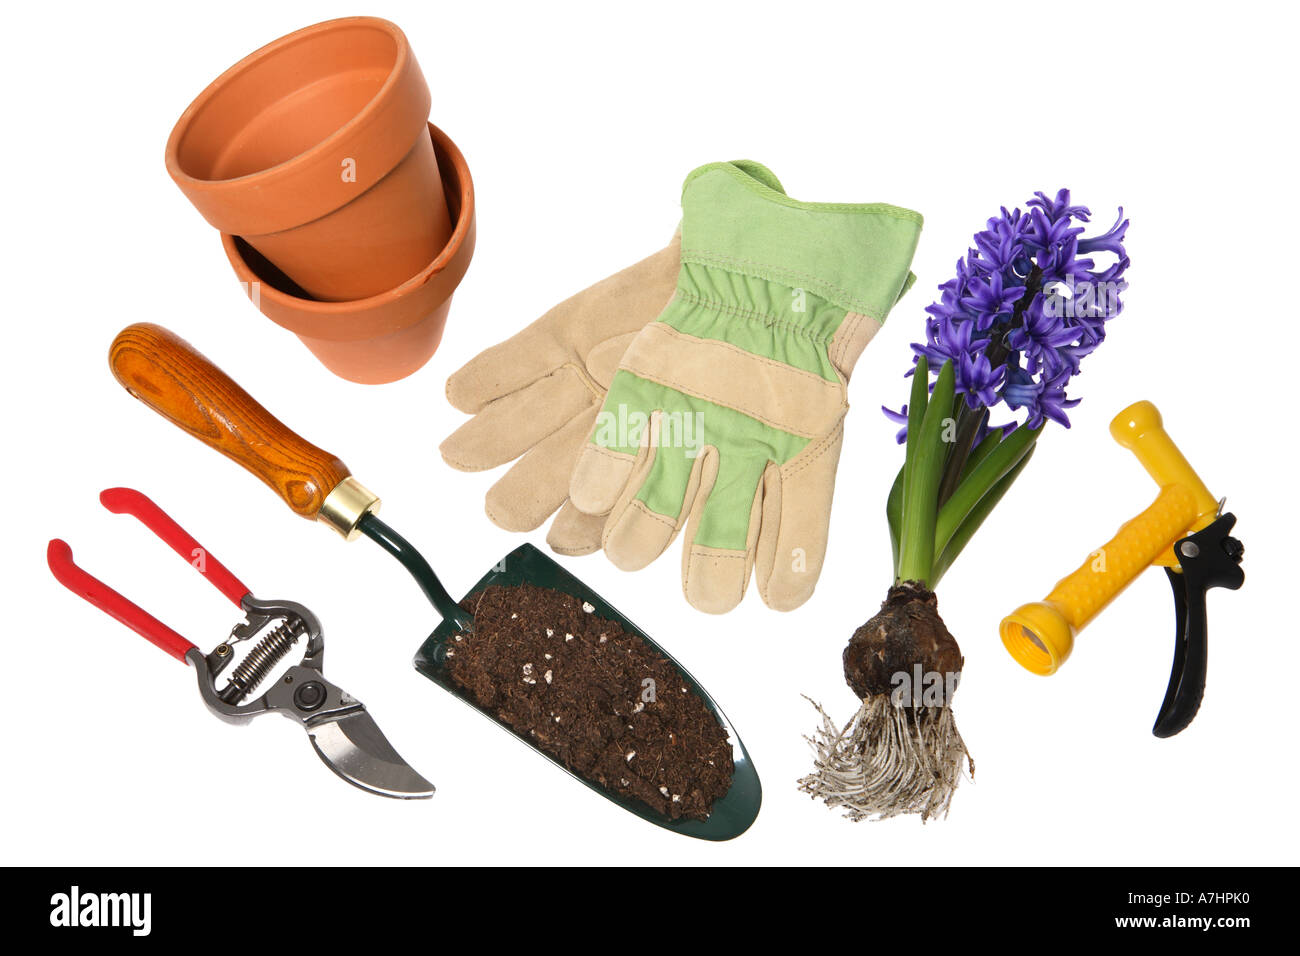 Gardening Objects: Pruning Shears, Shovel With Potting Soil, Terra Cotta  Pots, Gardening